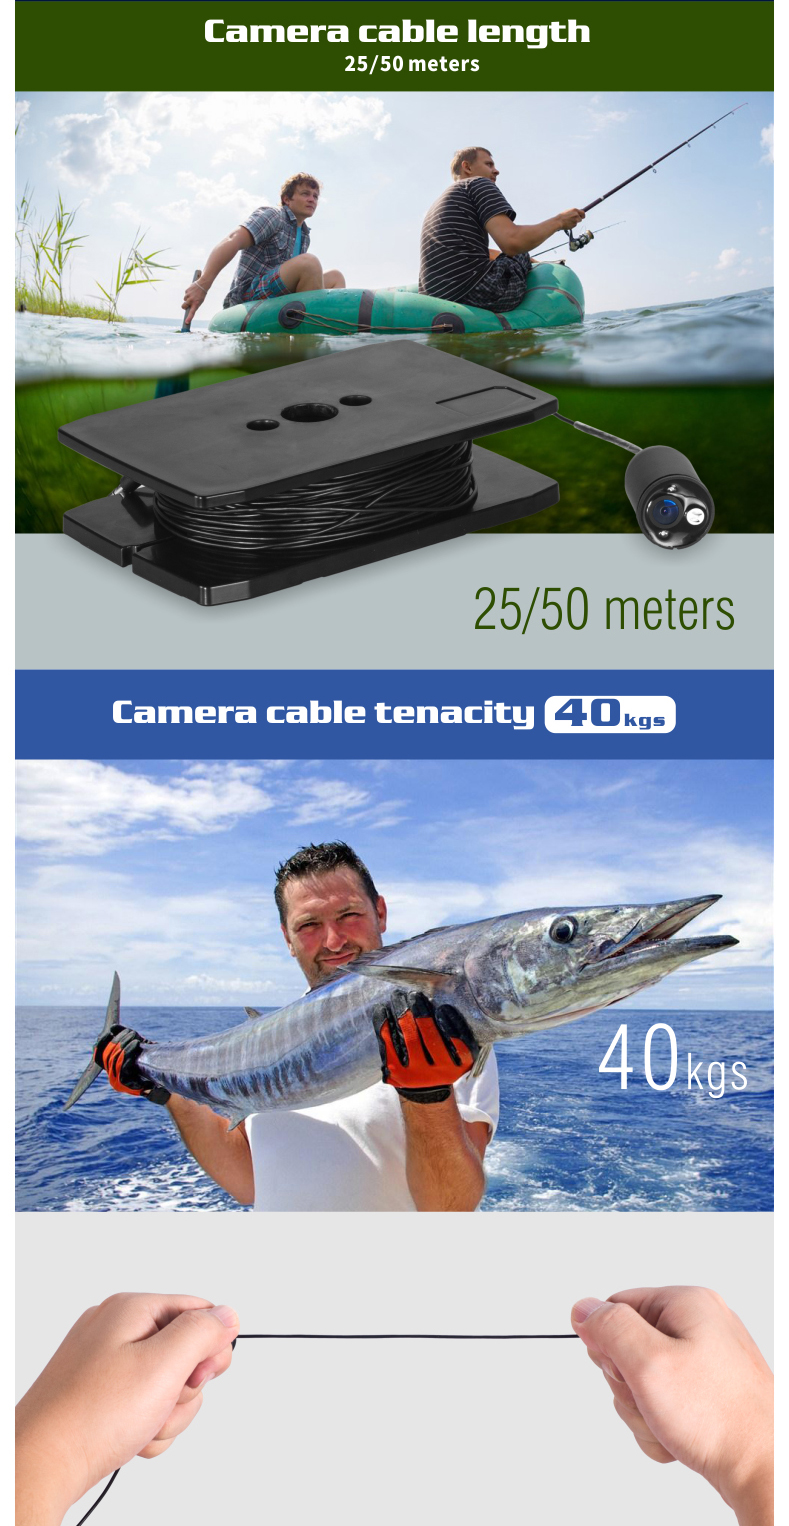 Camera Cable Length 25/50 meters, Camera Cable tenacity 40kgs